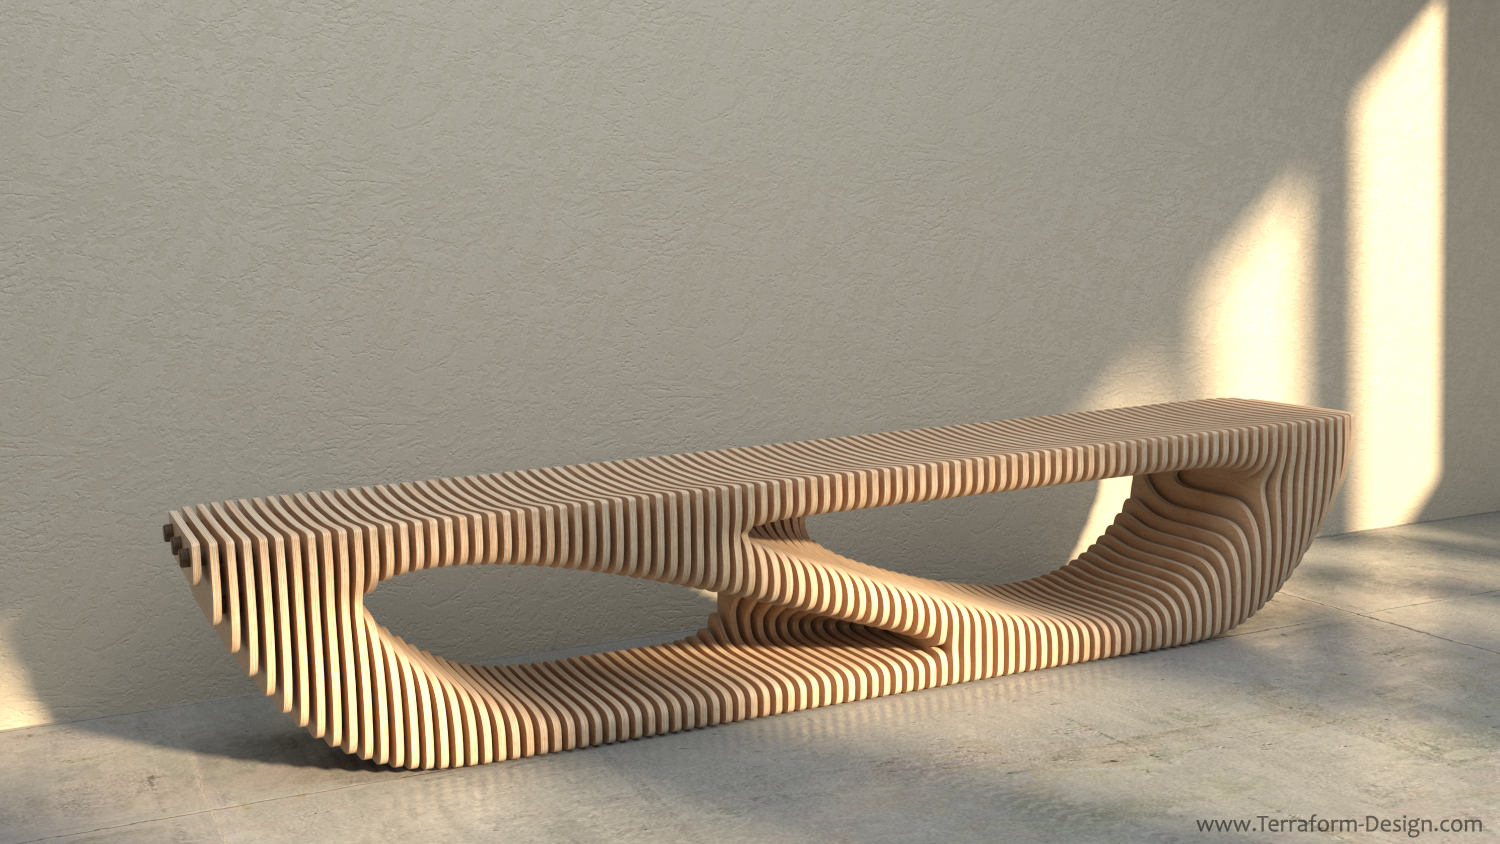 zebulun c_1W handmade parametric furniture cnc router sectioned flowing wooden decorative postmodern organic geometric plywood airport museum public bench tv stand terraform design.jpg